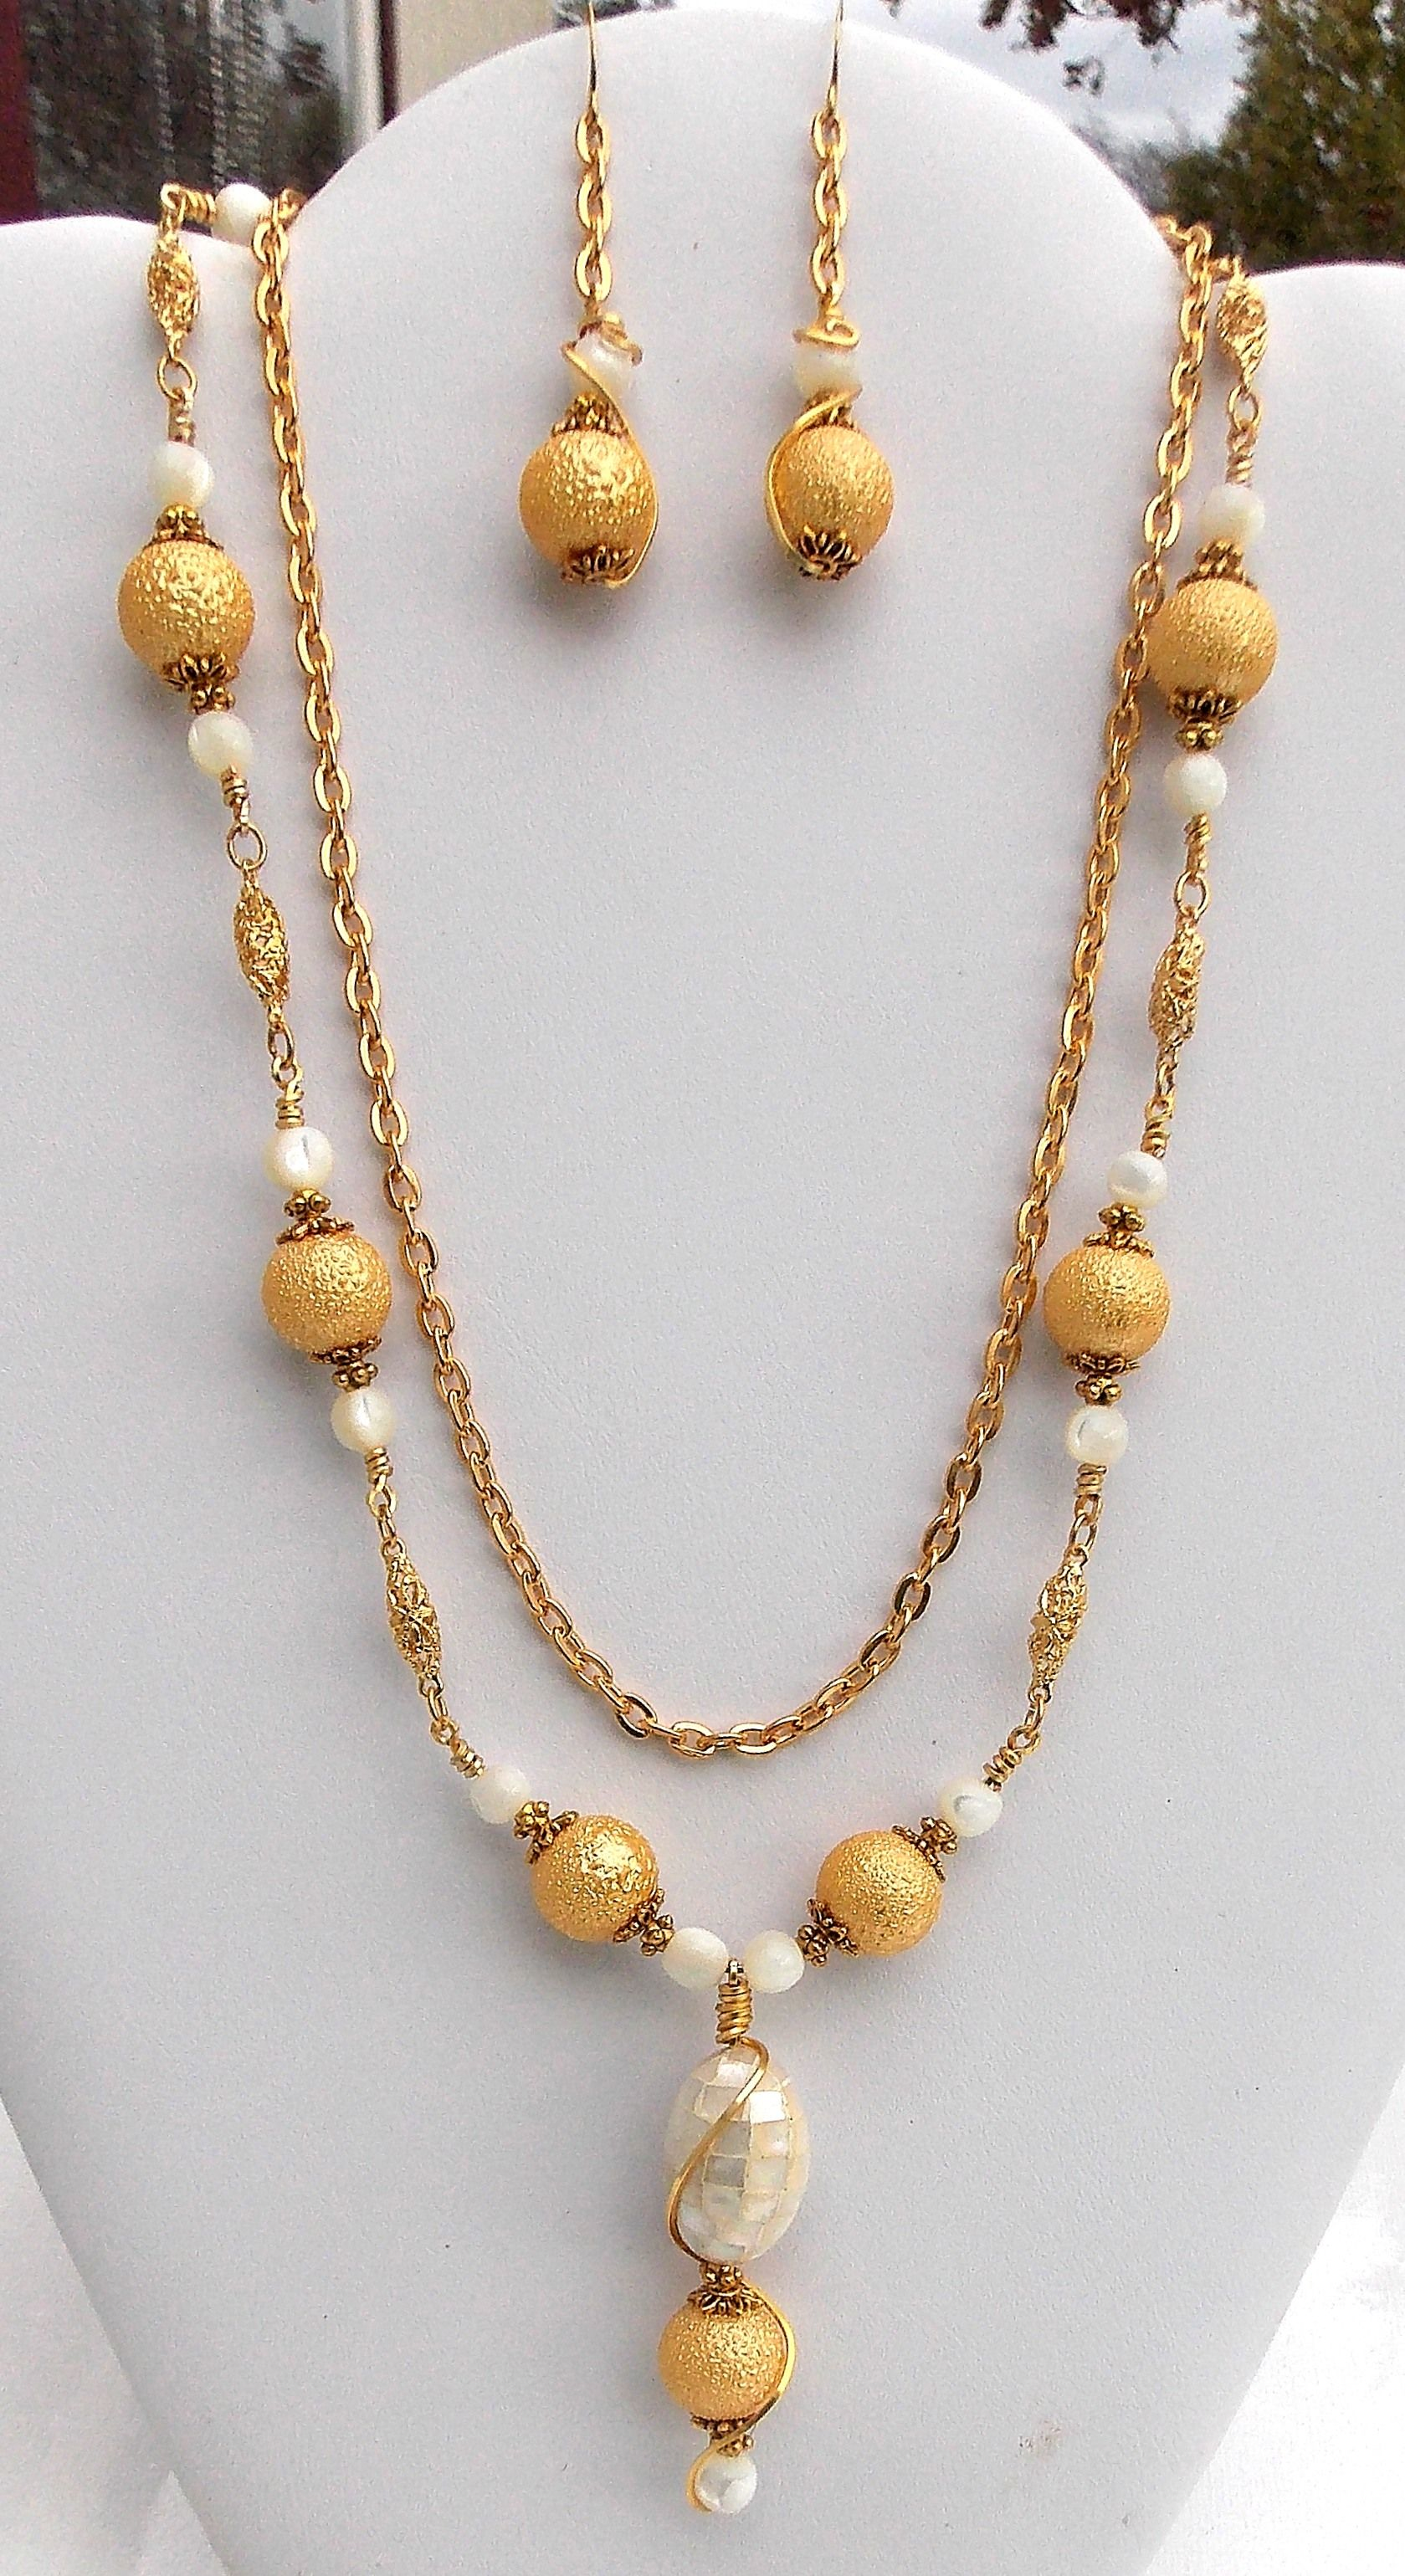 Gold textured glass and mother of pearl necklace and earring set